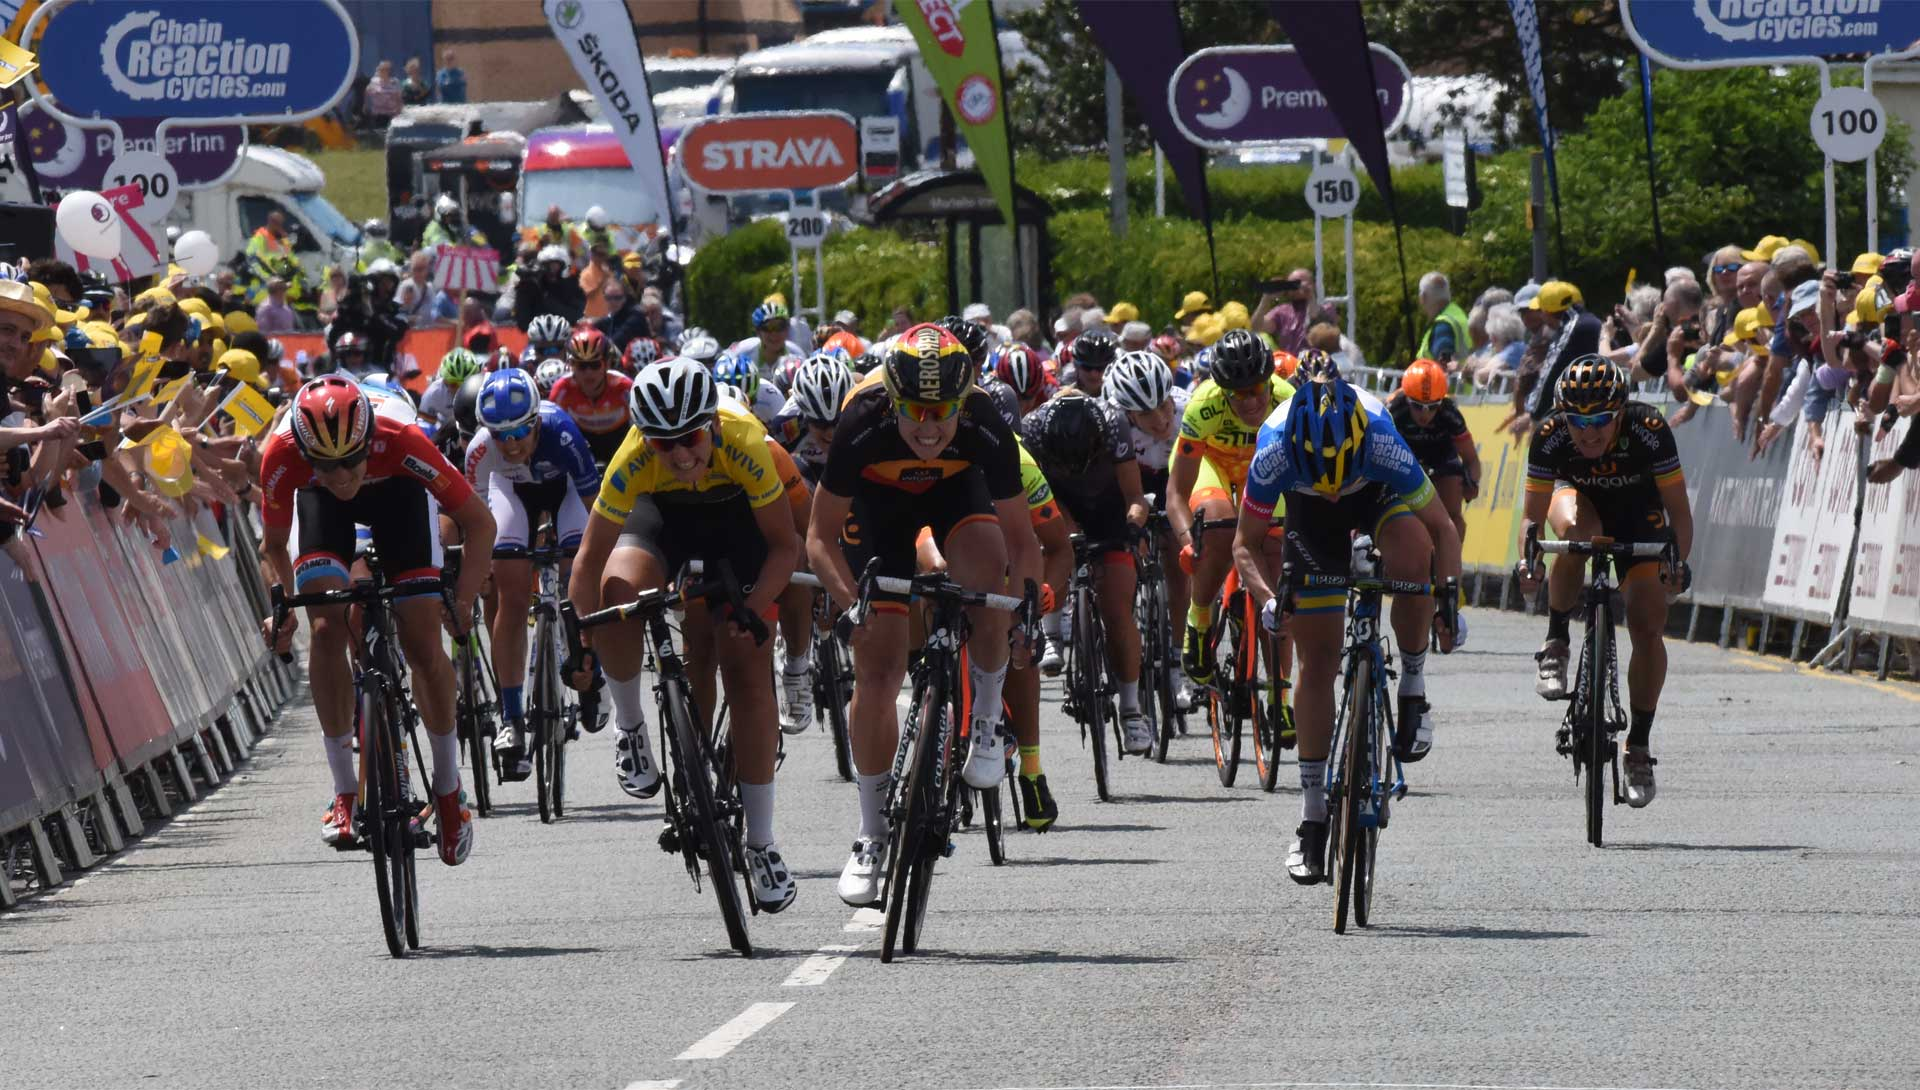 Johansson and D'hoore excited about return to the Aviva Women's Tour